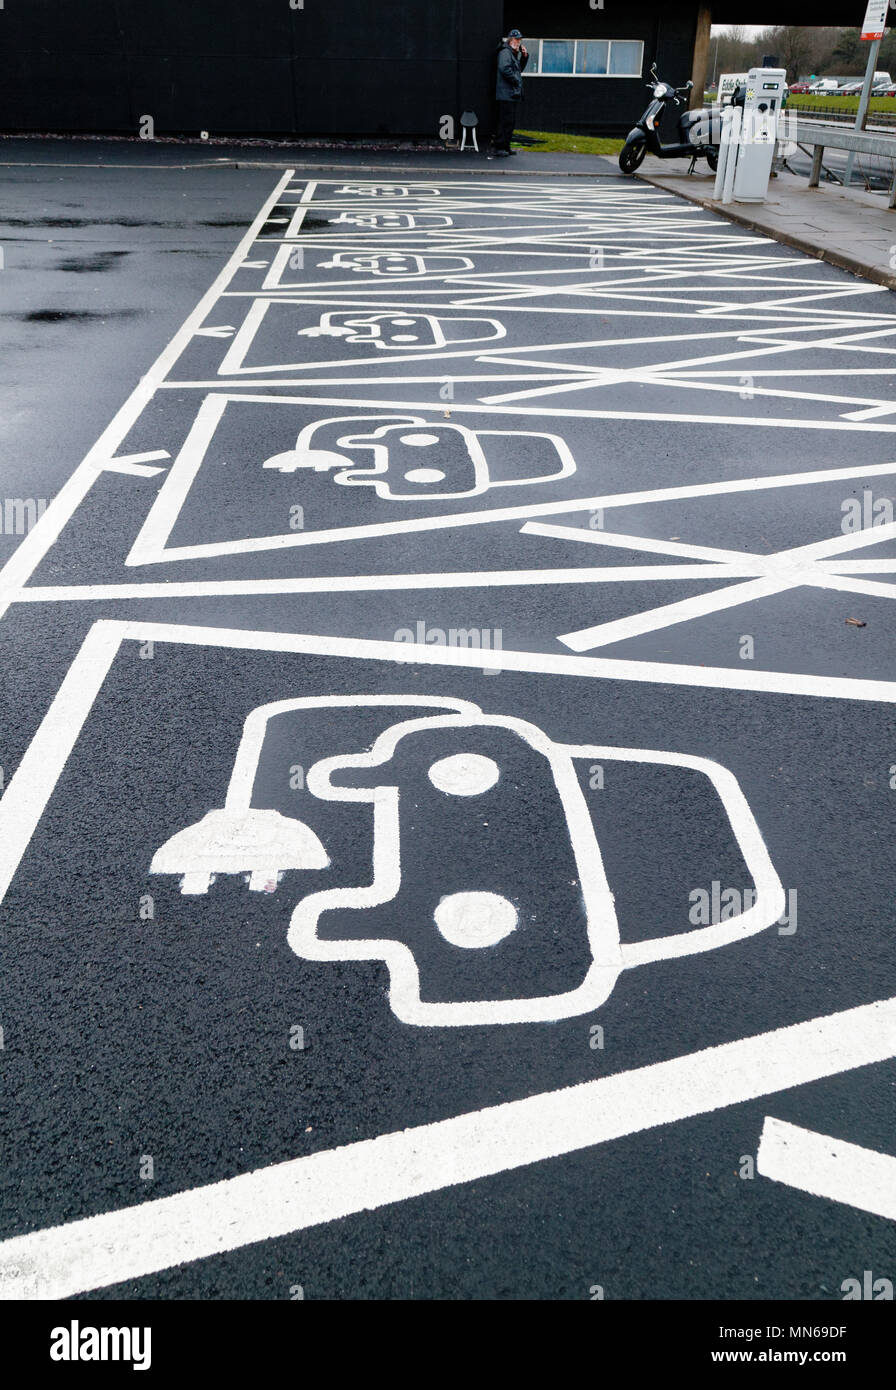 Electric vehicle plug in places in a motorway services car park in England - Stock Image